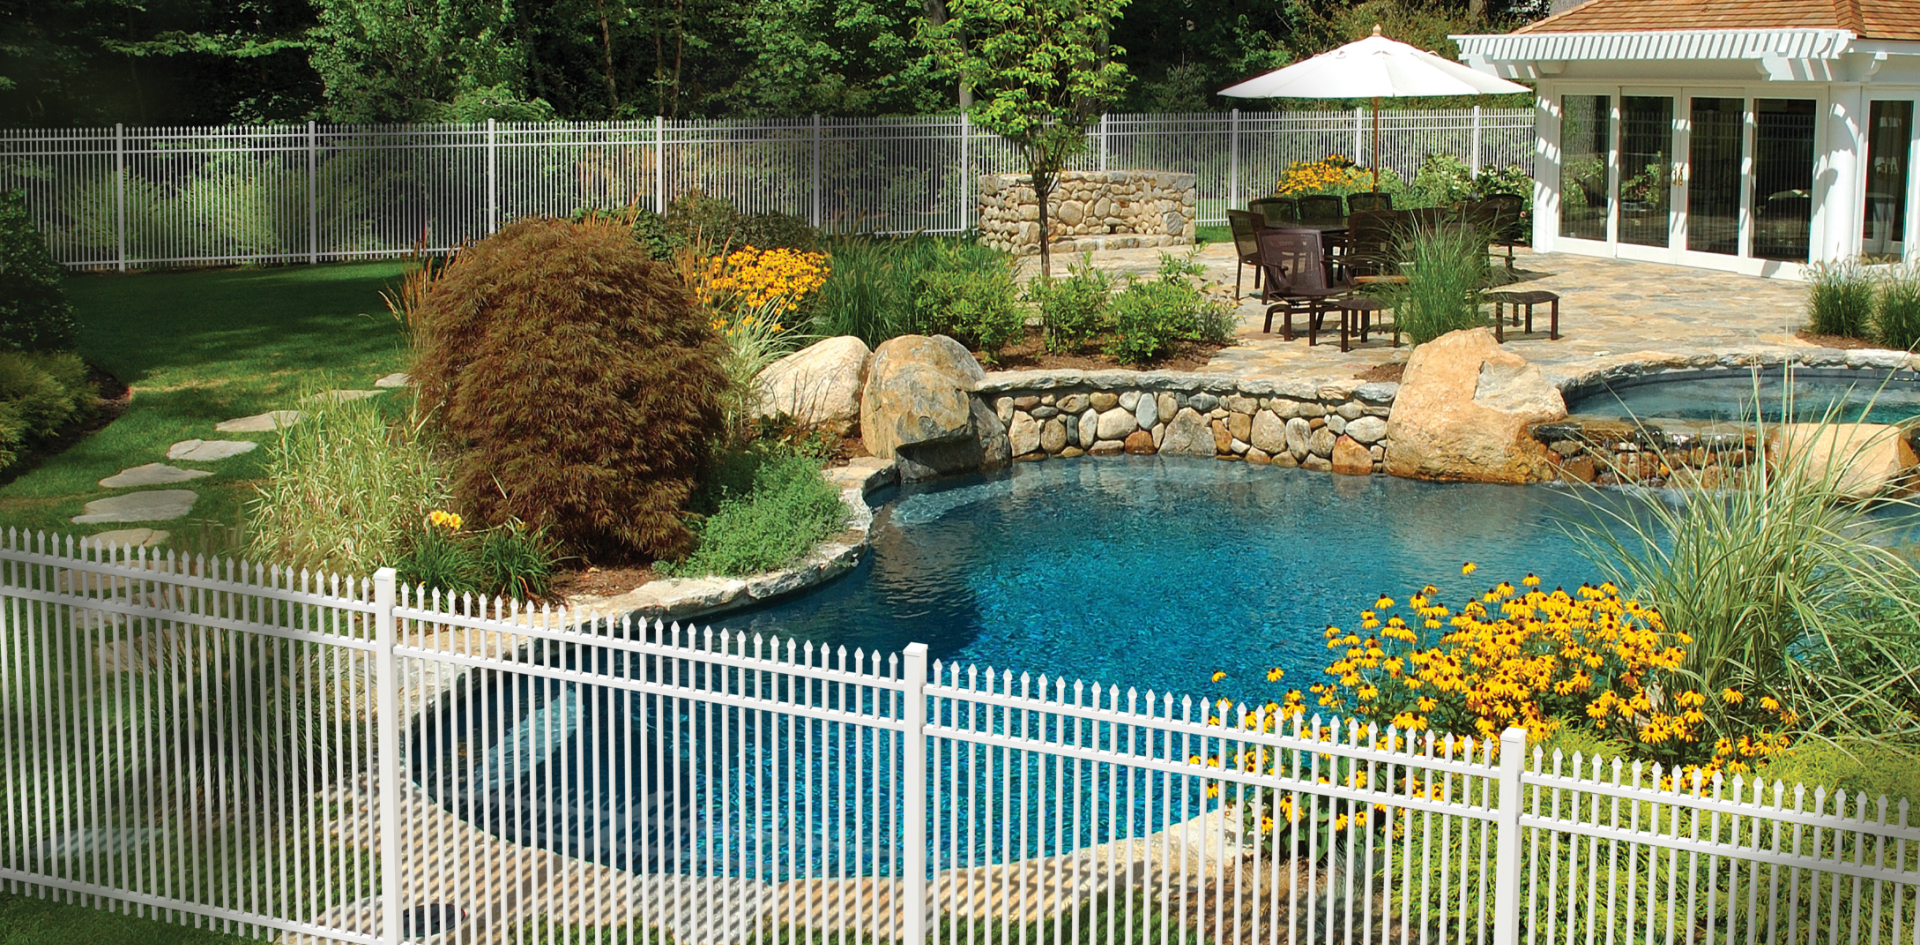 backyard residential pool with fence